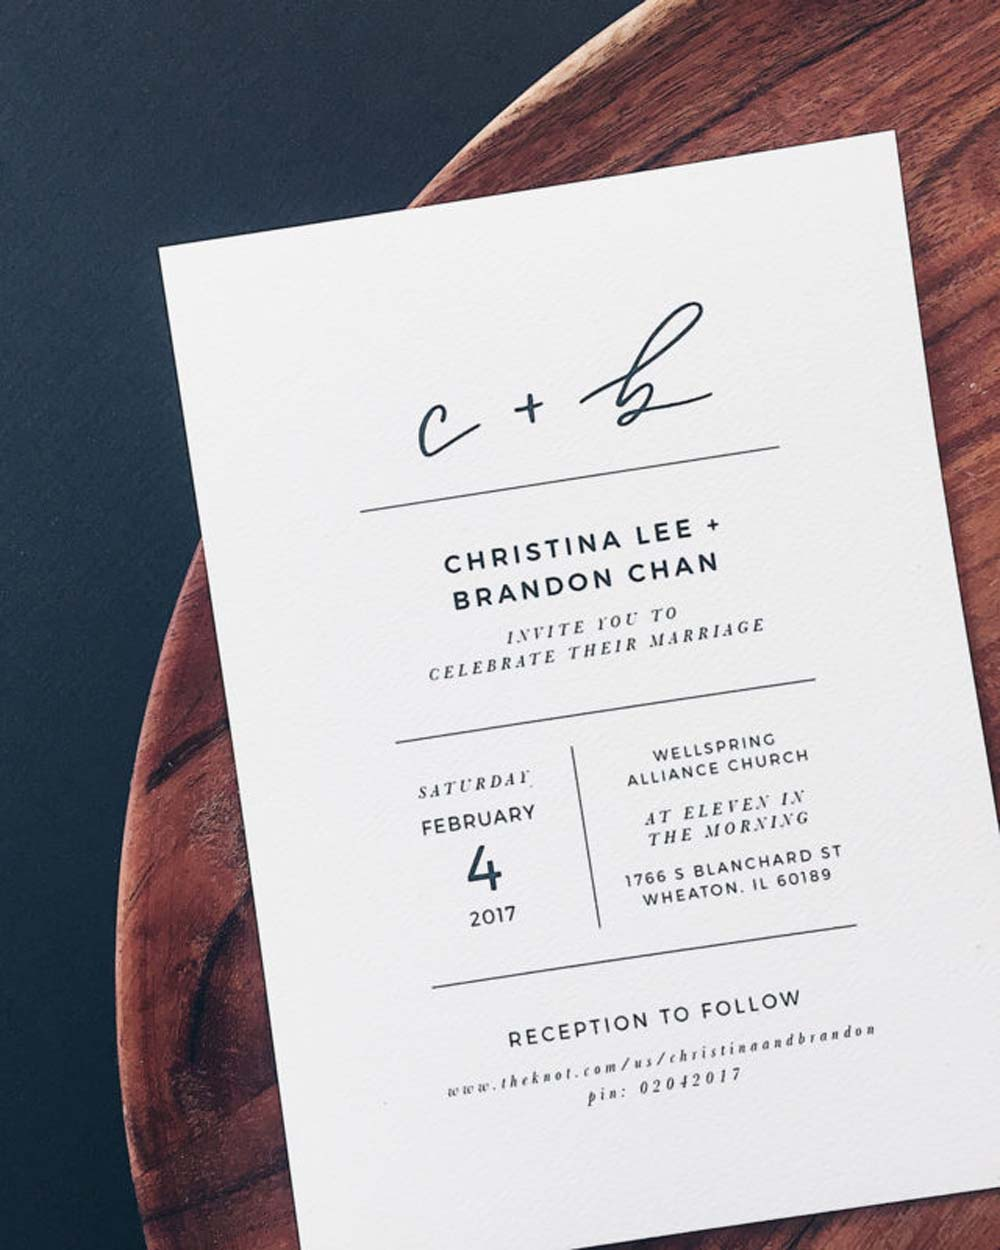 Lovely Minimalist Invitations For A Modern Wedding | Weddingbells